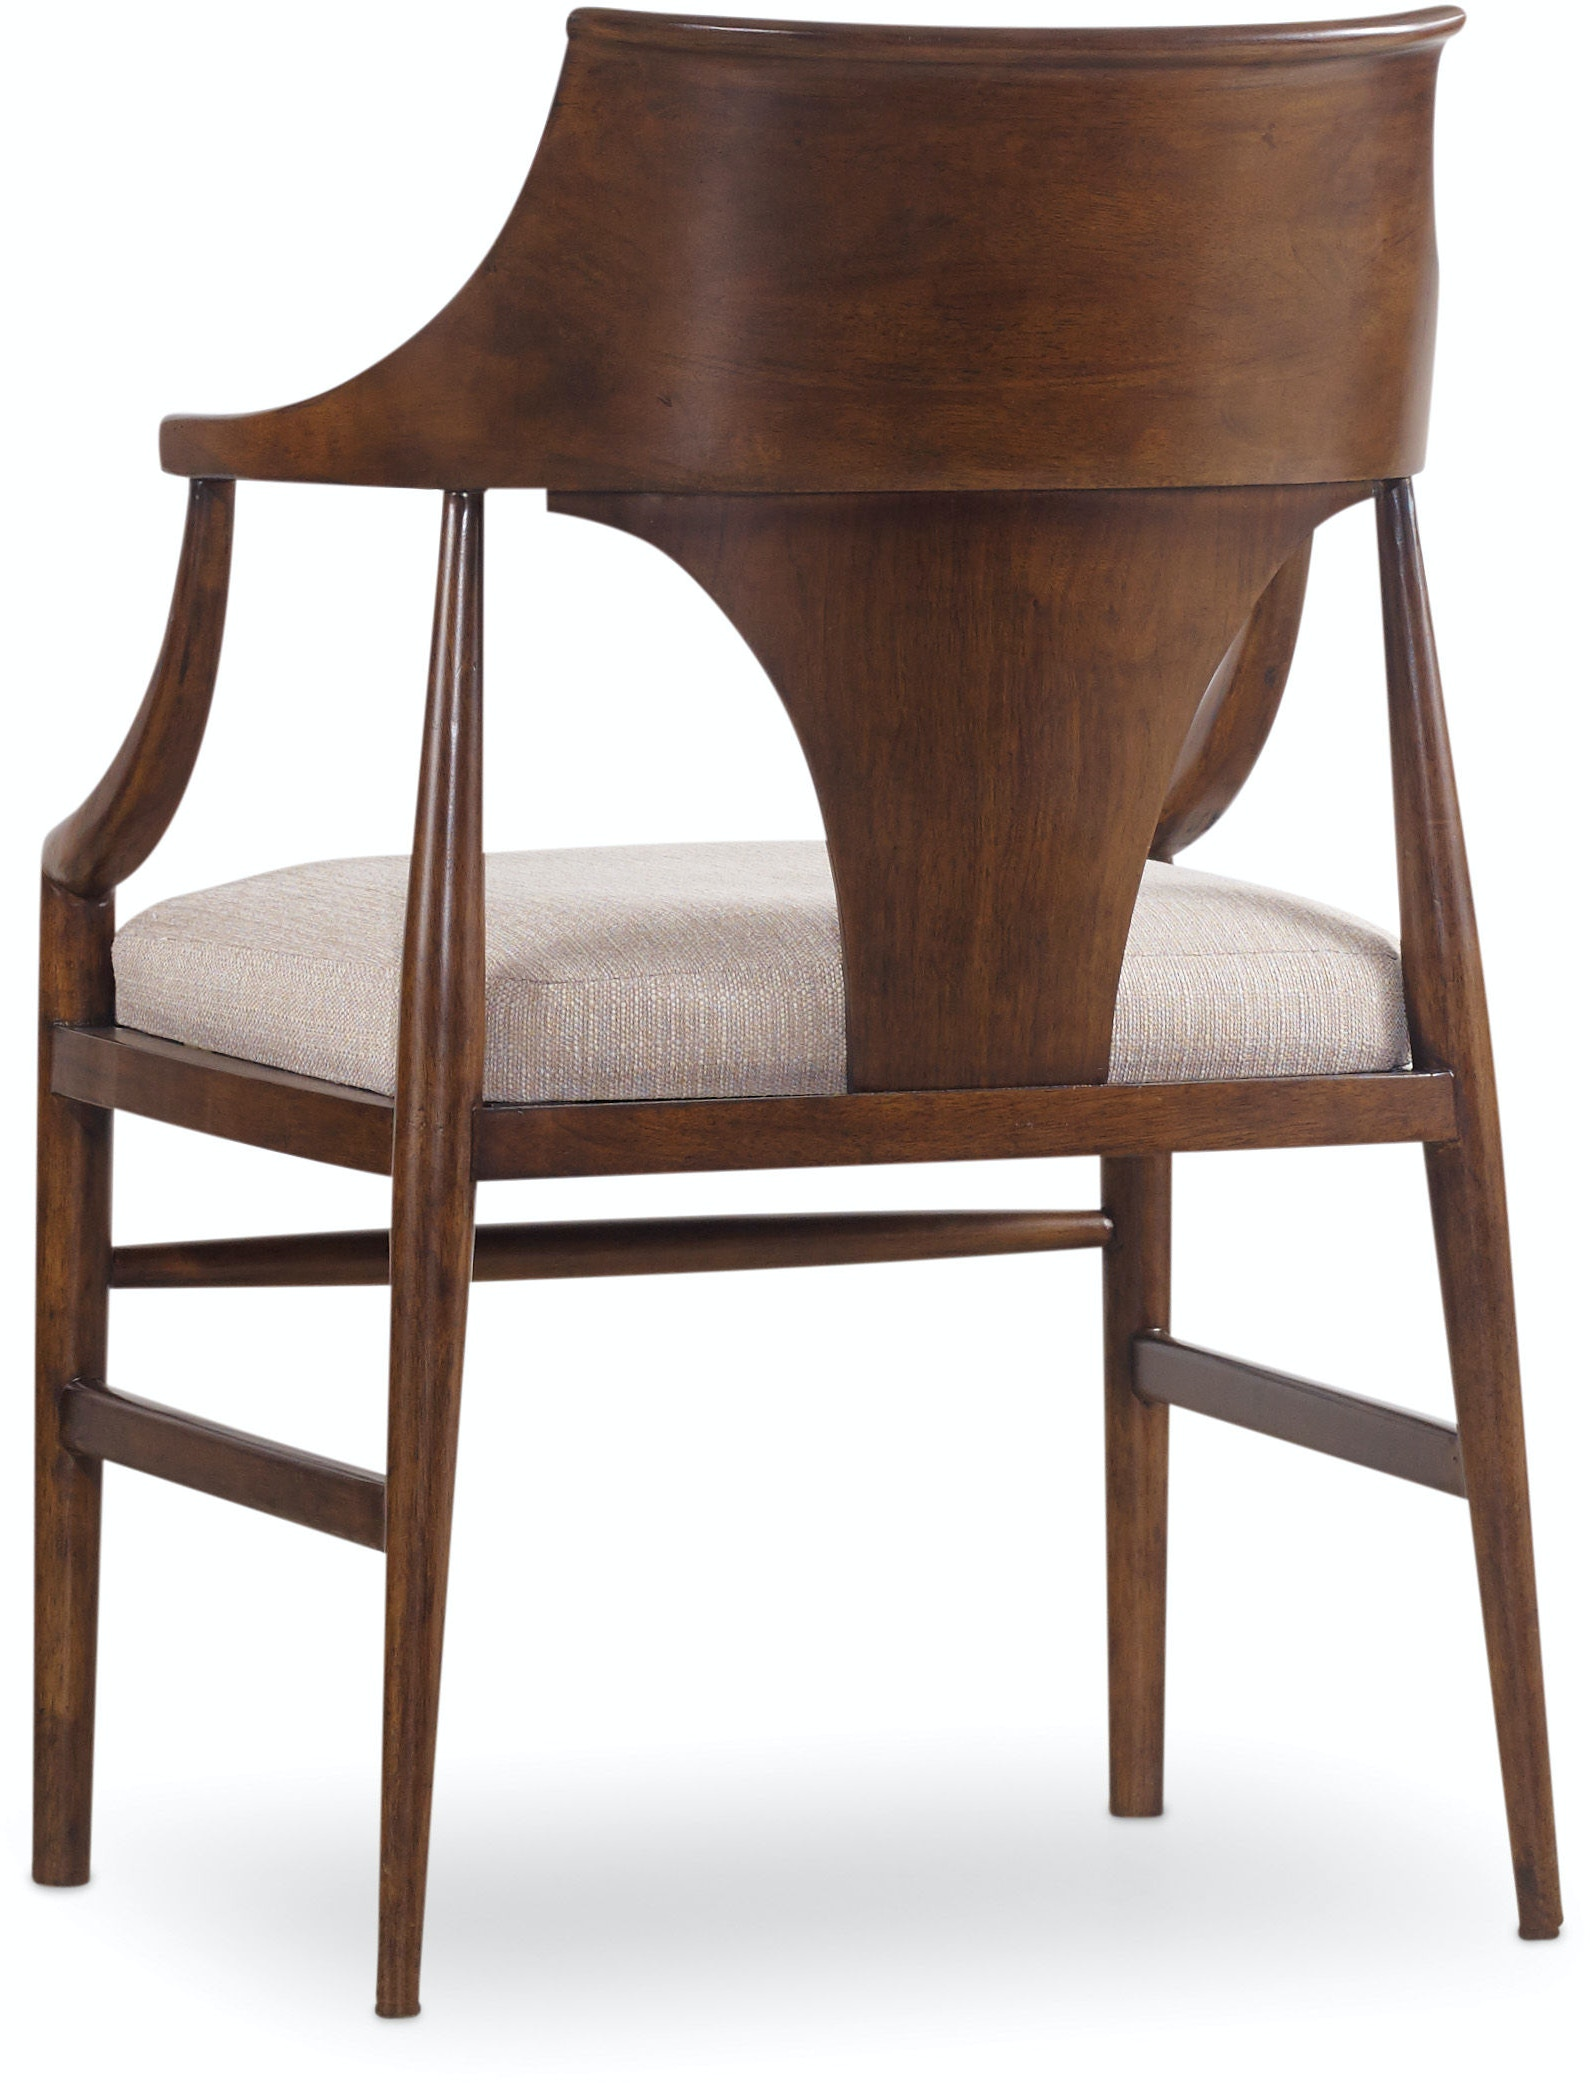 Hooker Furniture Dining Room Studio 7H Jens Danish Arm Chair 5398